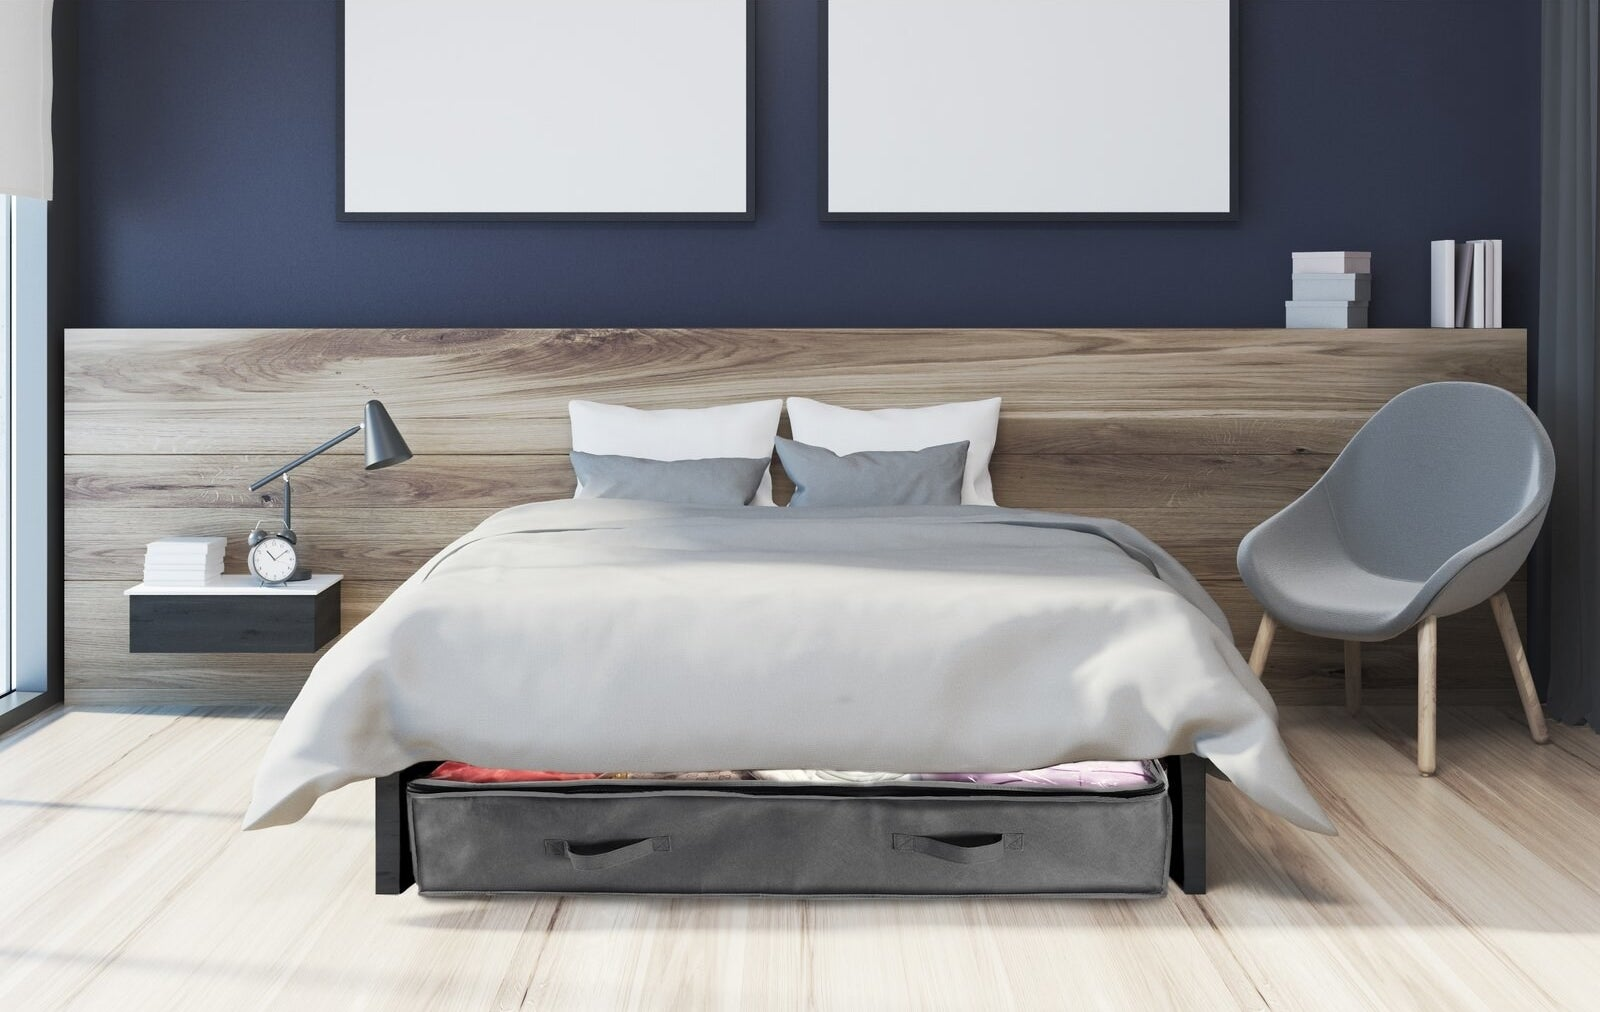 The storage set with handles to pull out, under a bed